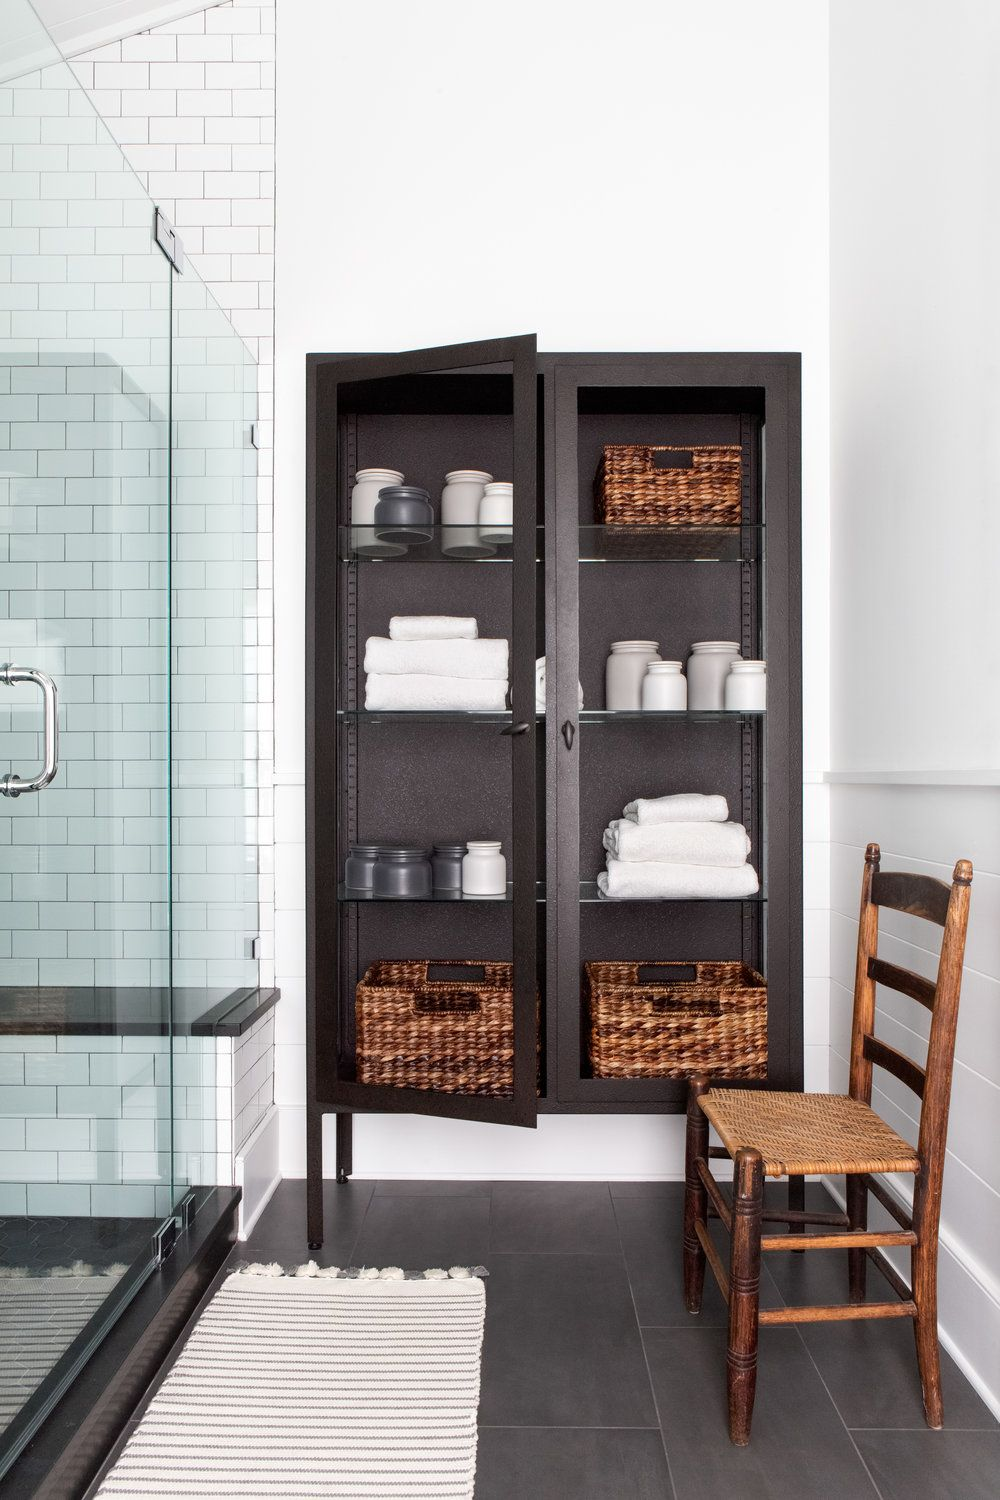 11 Best Bathroom Storage Ideas in 1121 - Creative Bathroom Storage